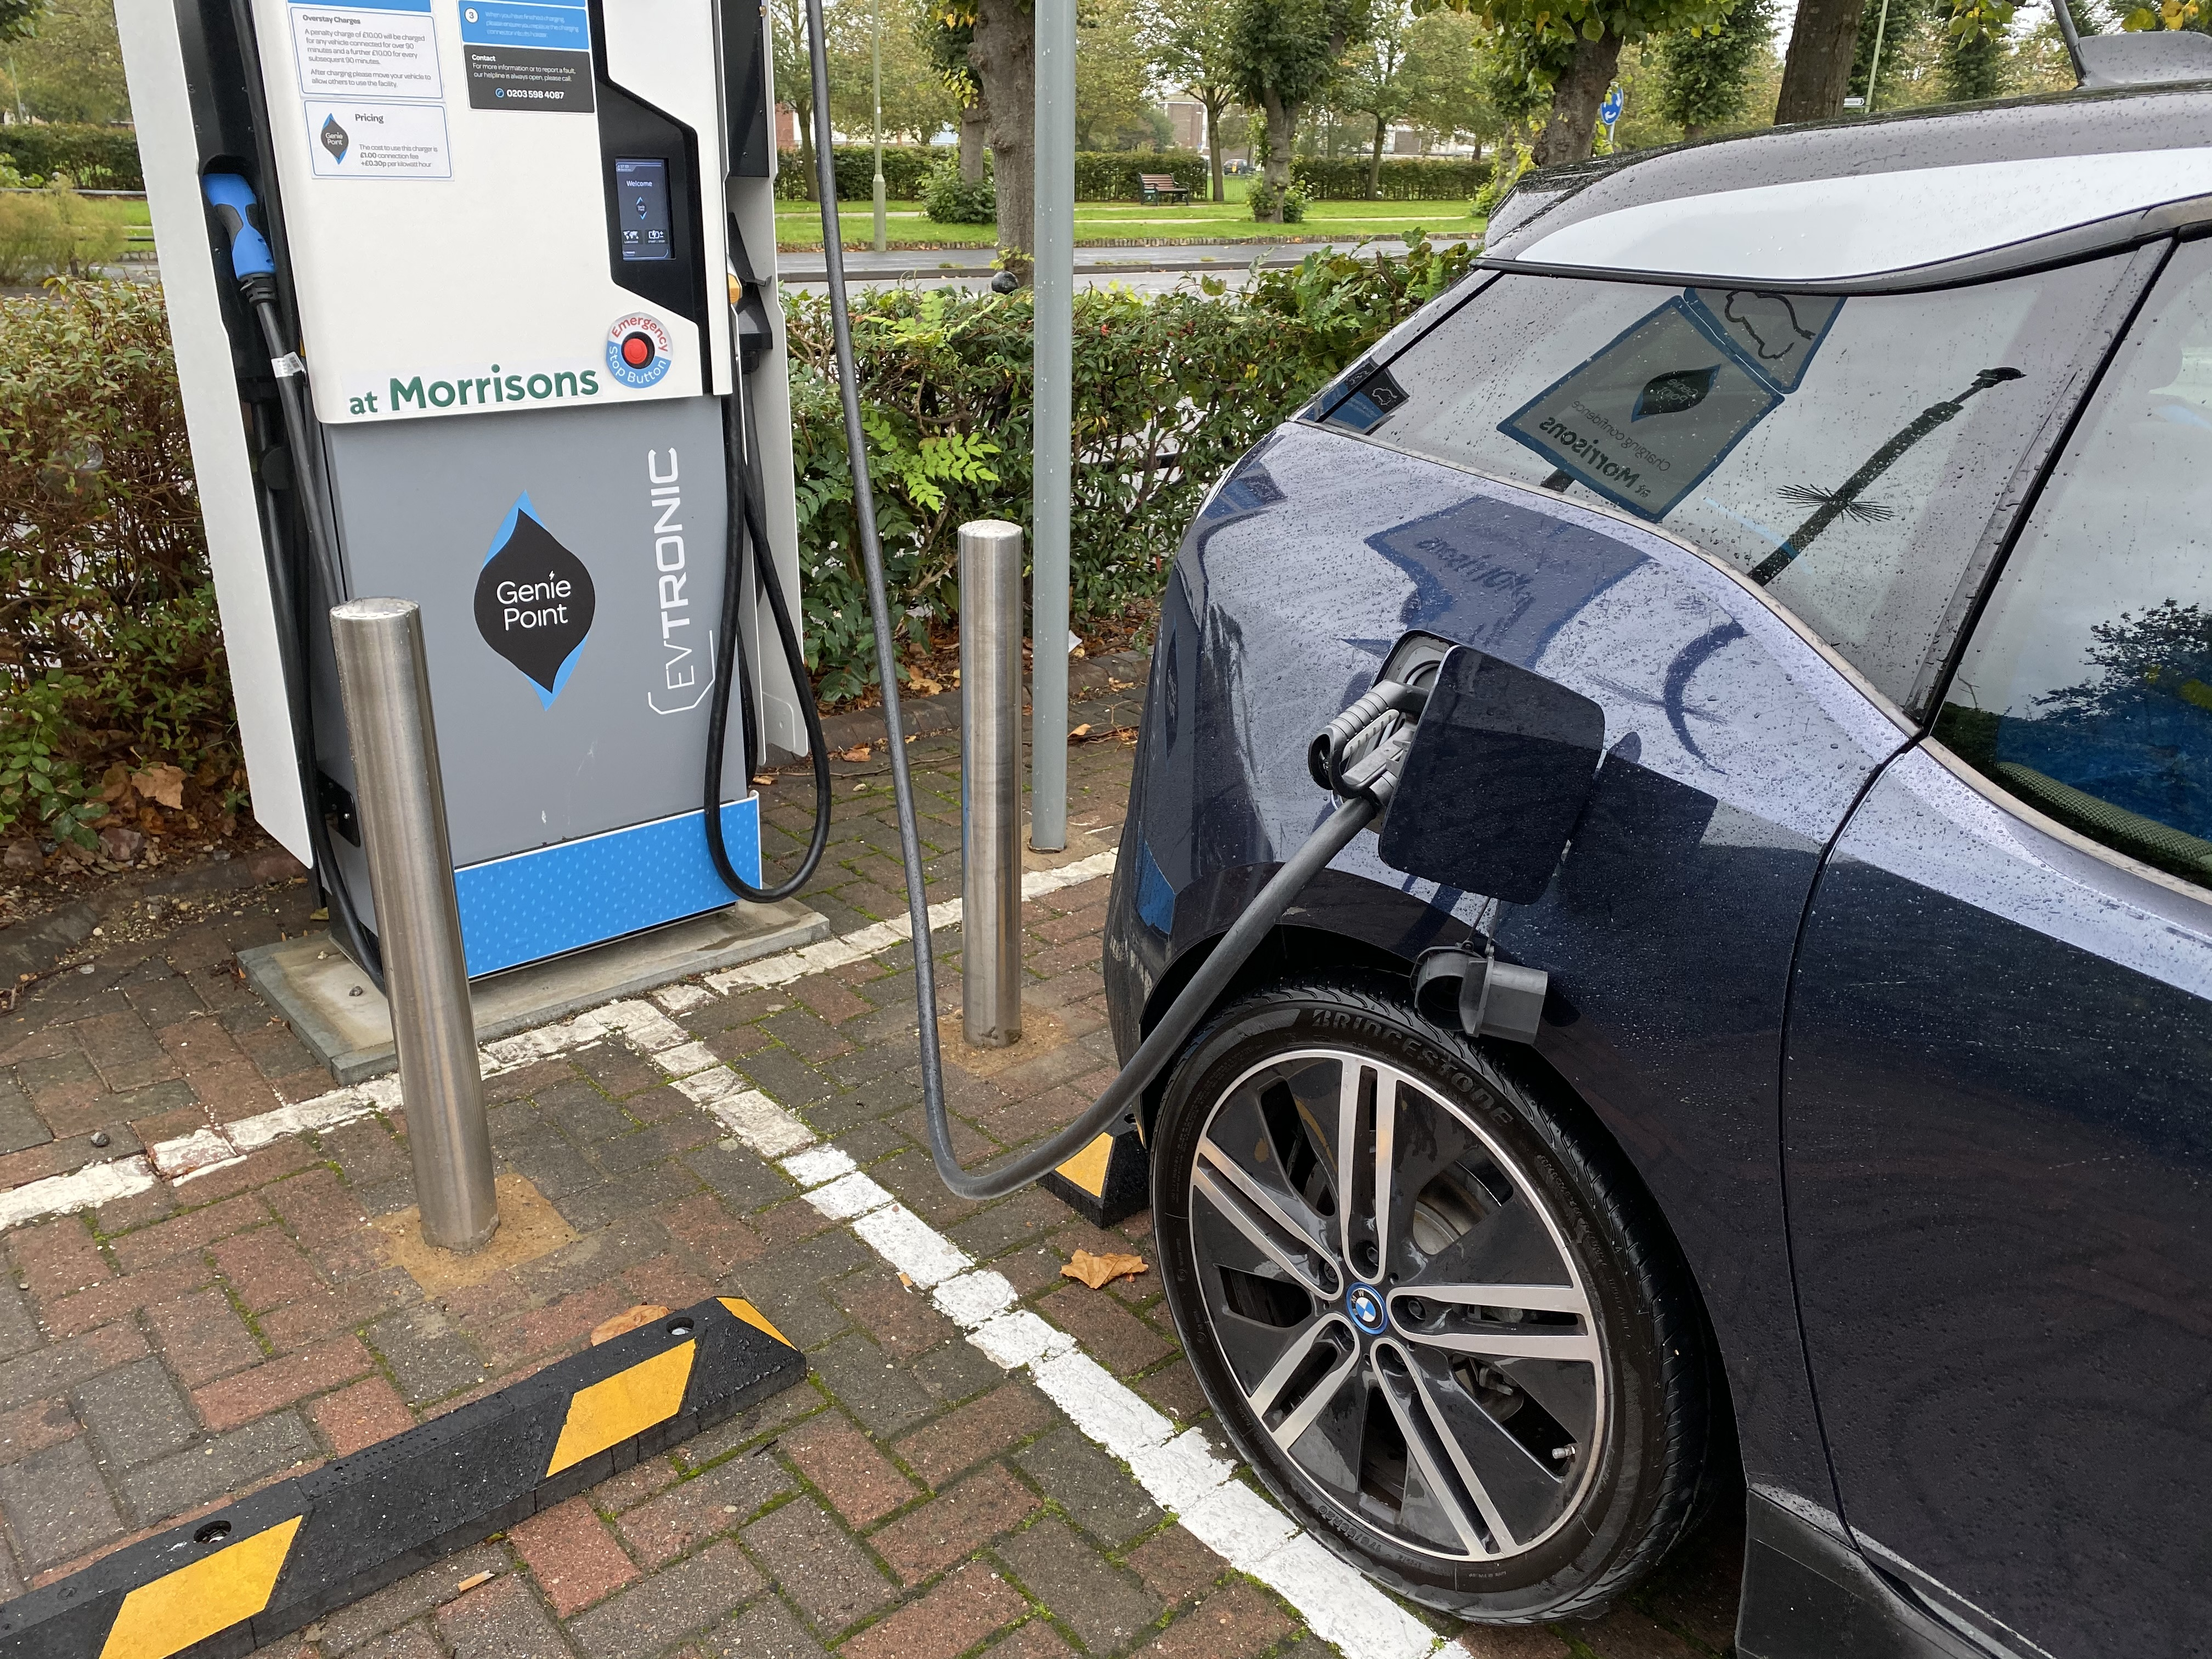 Increasing numbers of chargers mean plenty of opportunities to top up